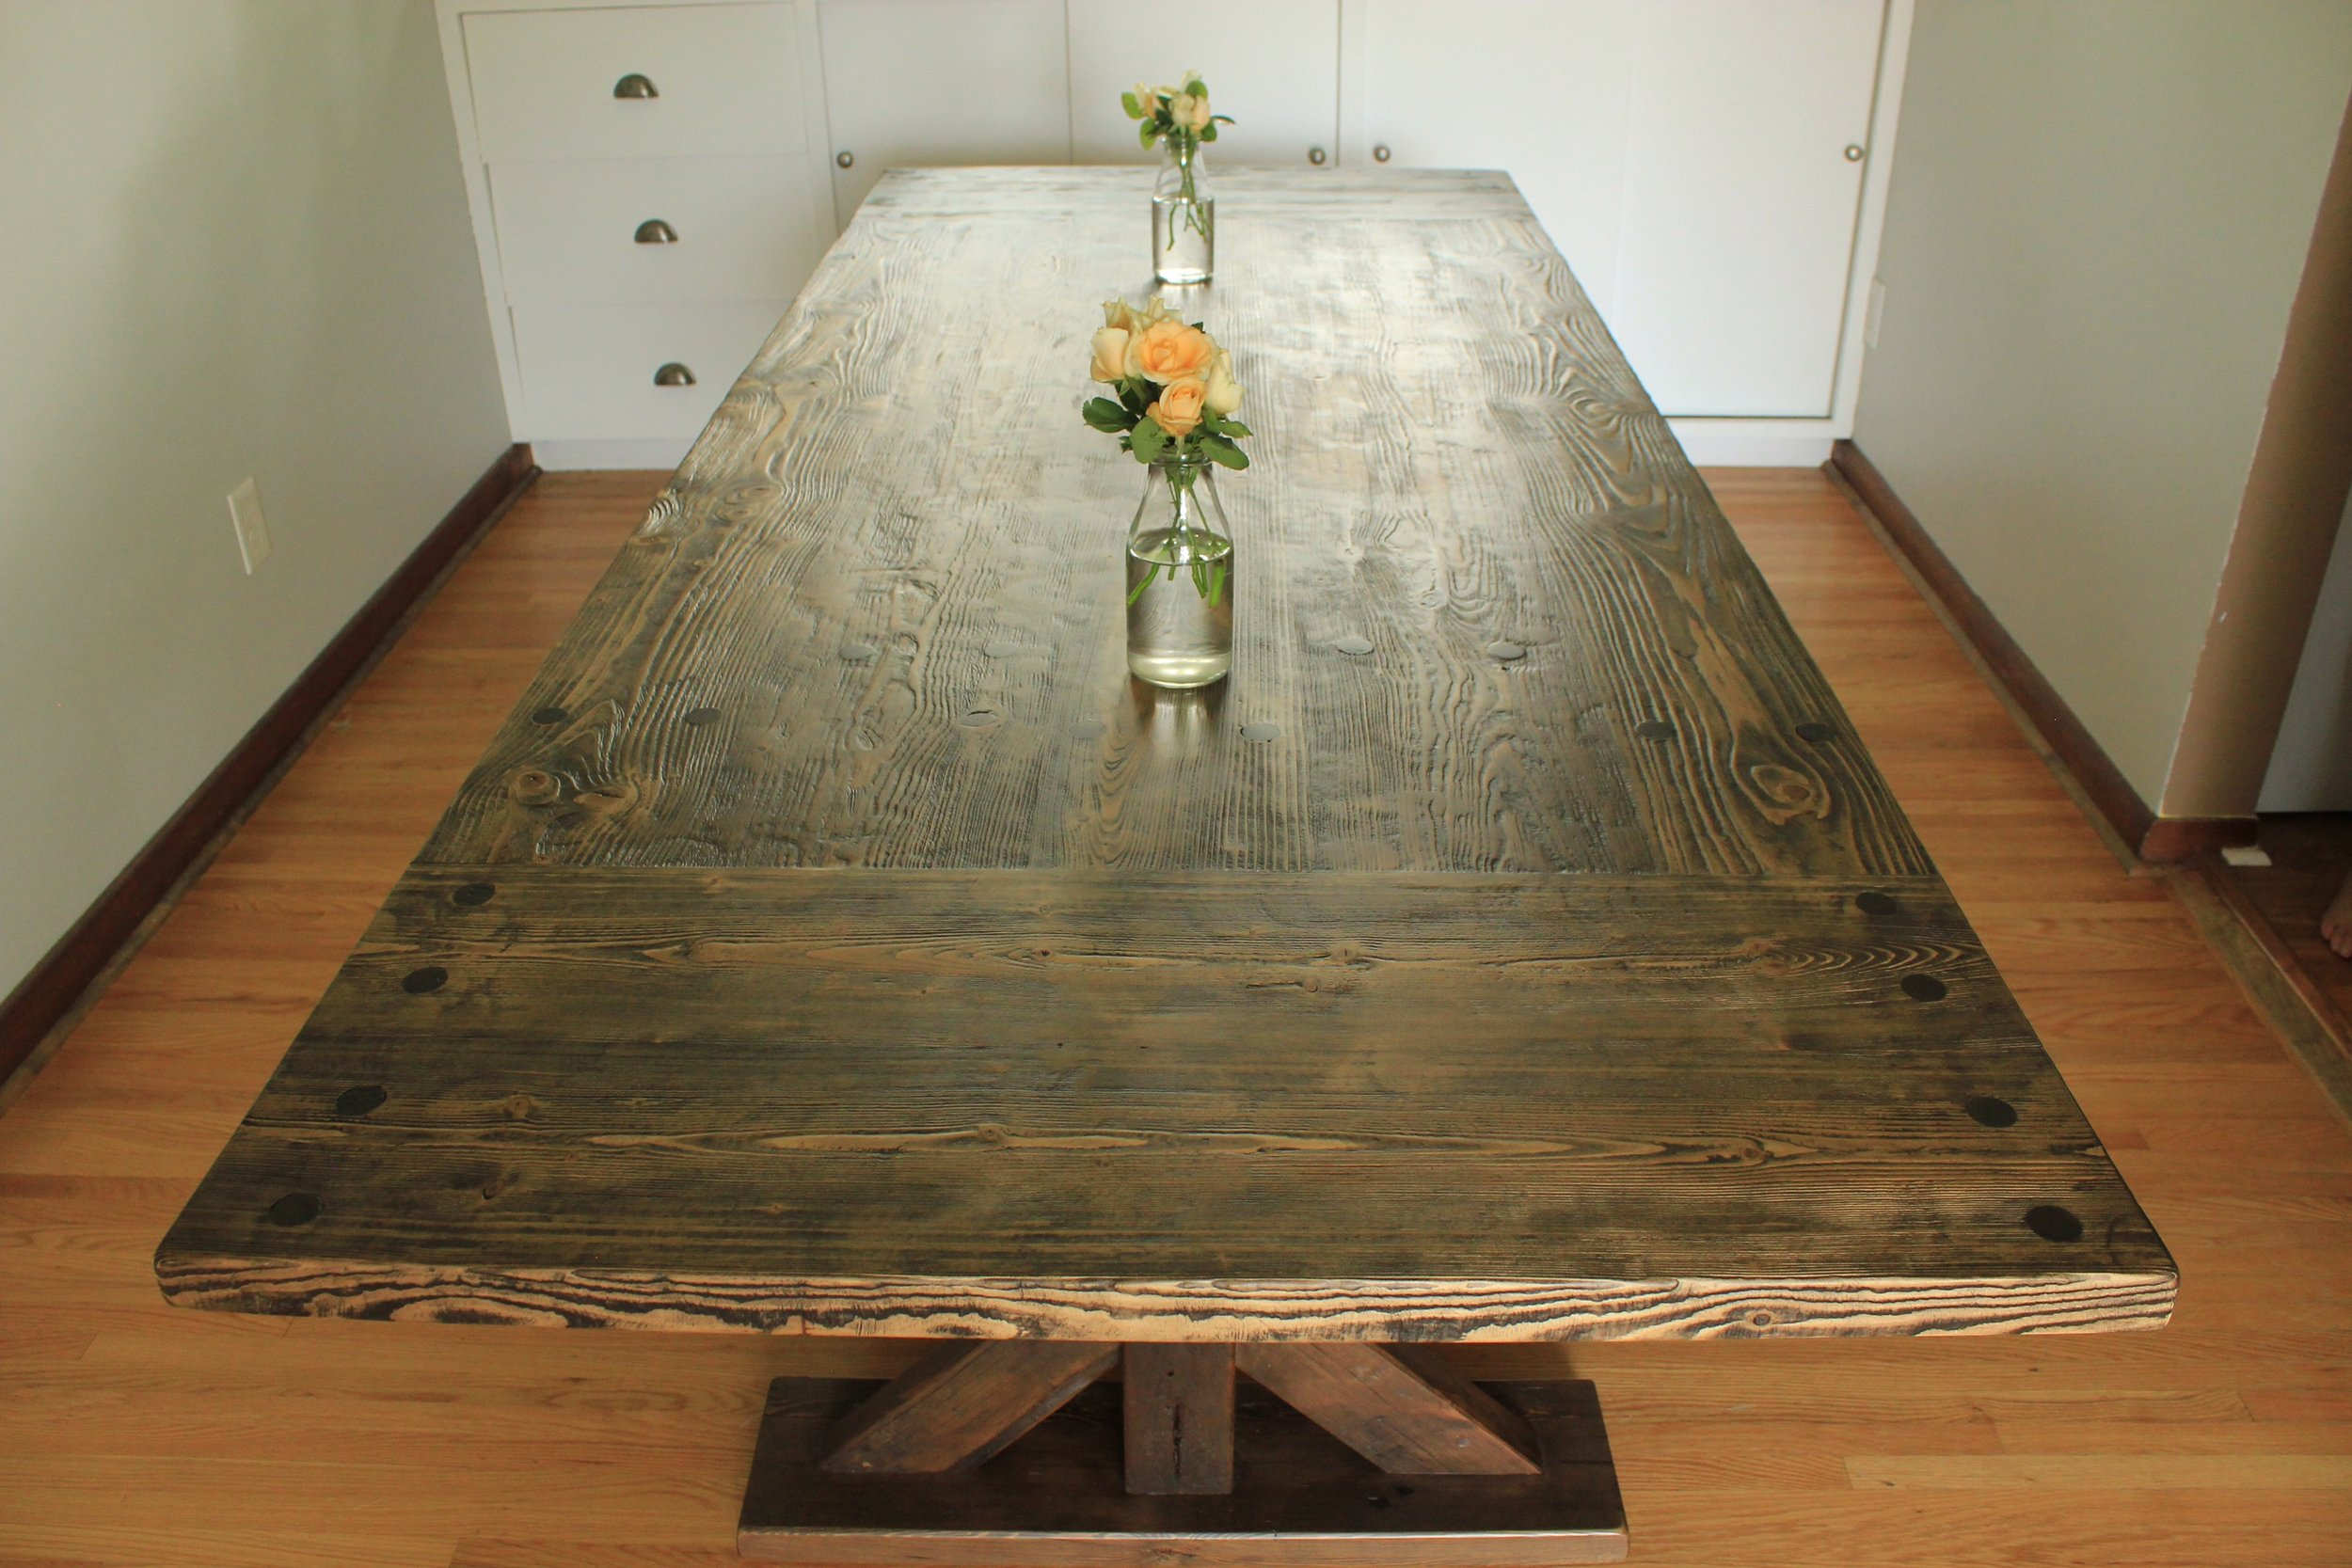 Reclaimed Wood Top with Matching X Post Base